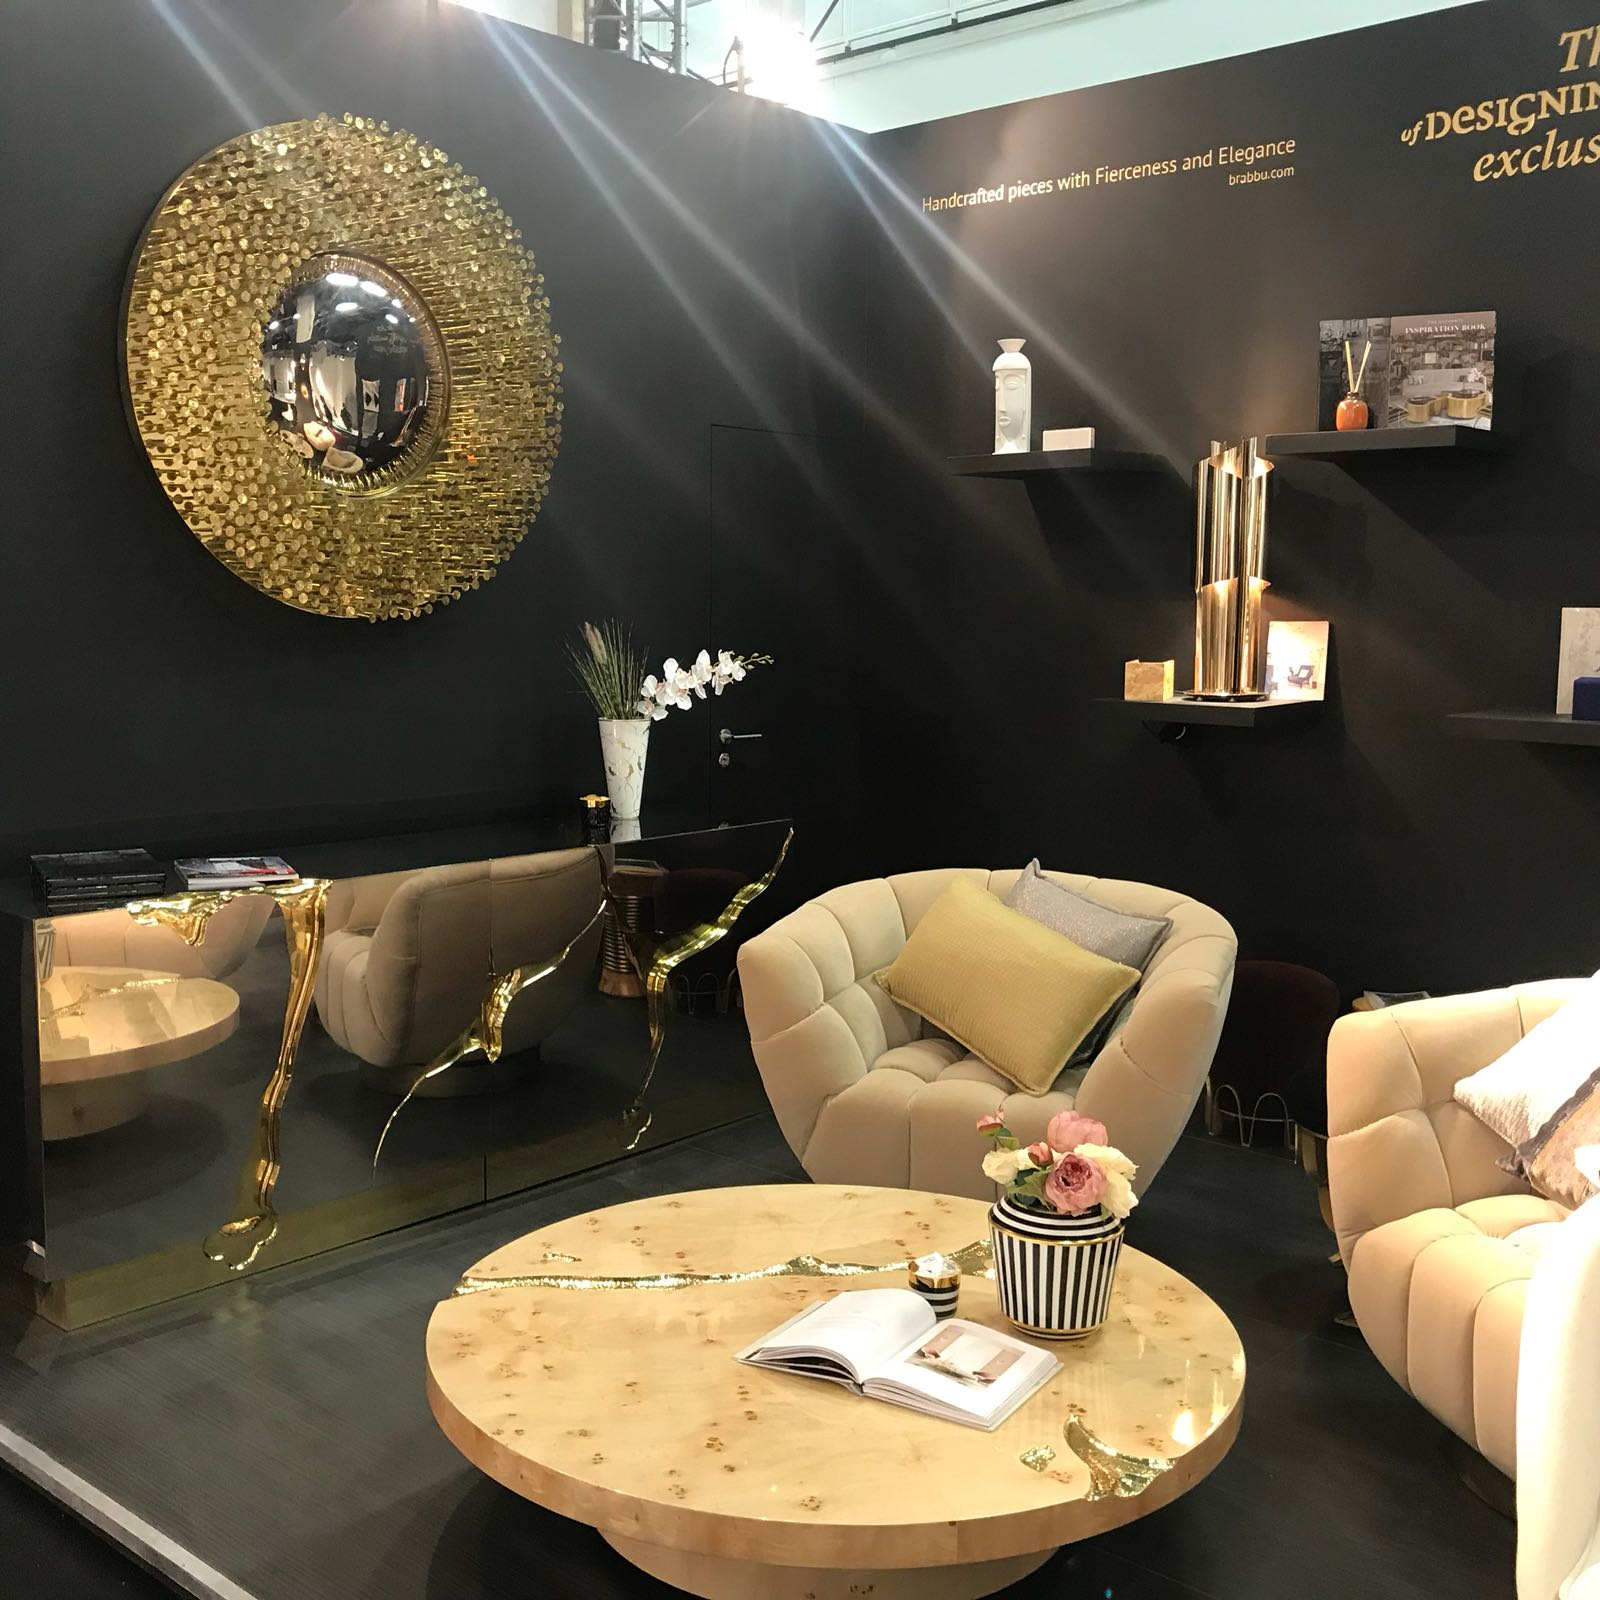 imm cologne IMM Cologne 2018: Master Bedroom Furniture Highlights IMM Cologne 2018 Master Bedroom Furniture Highlights 4